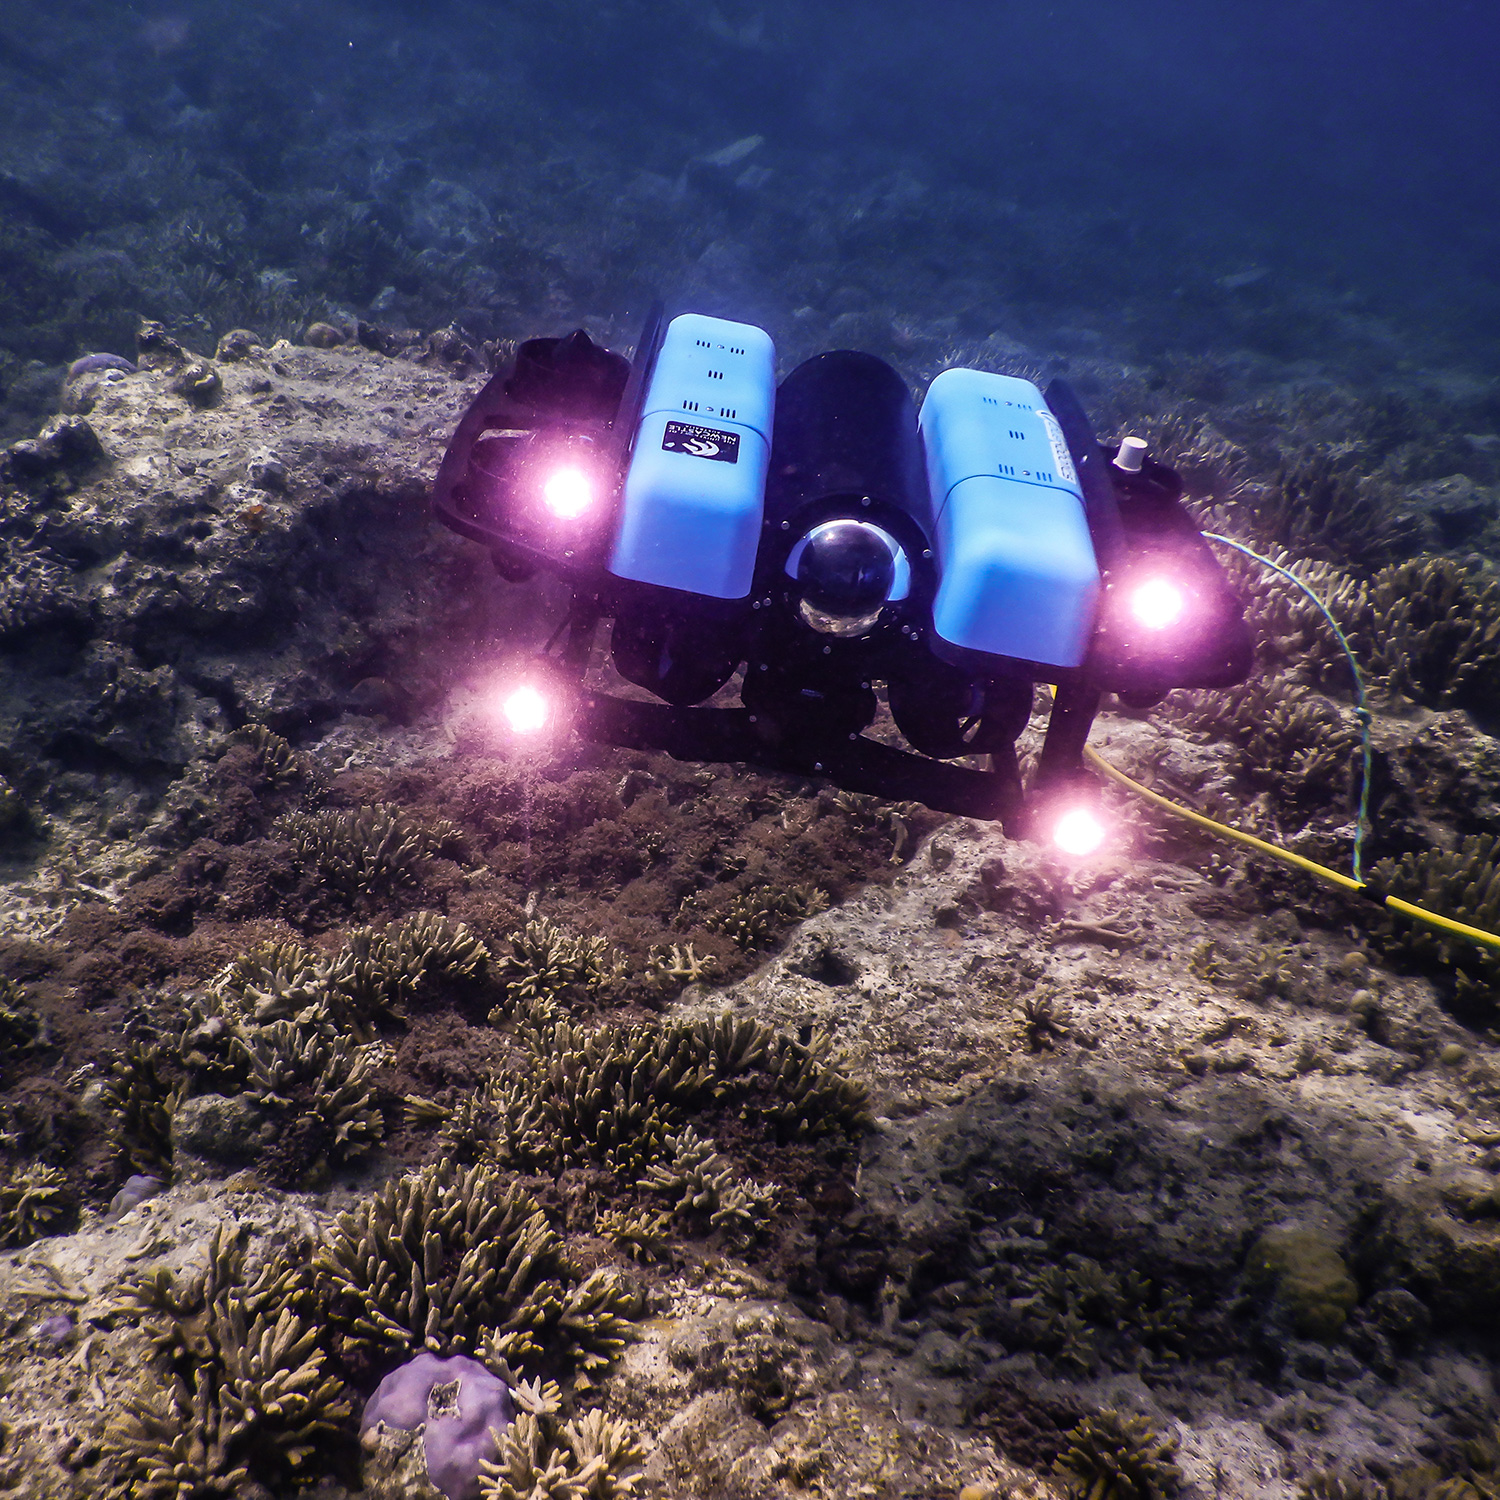 A remotely operated vehicle underwater